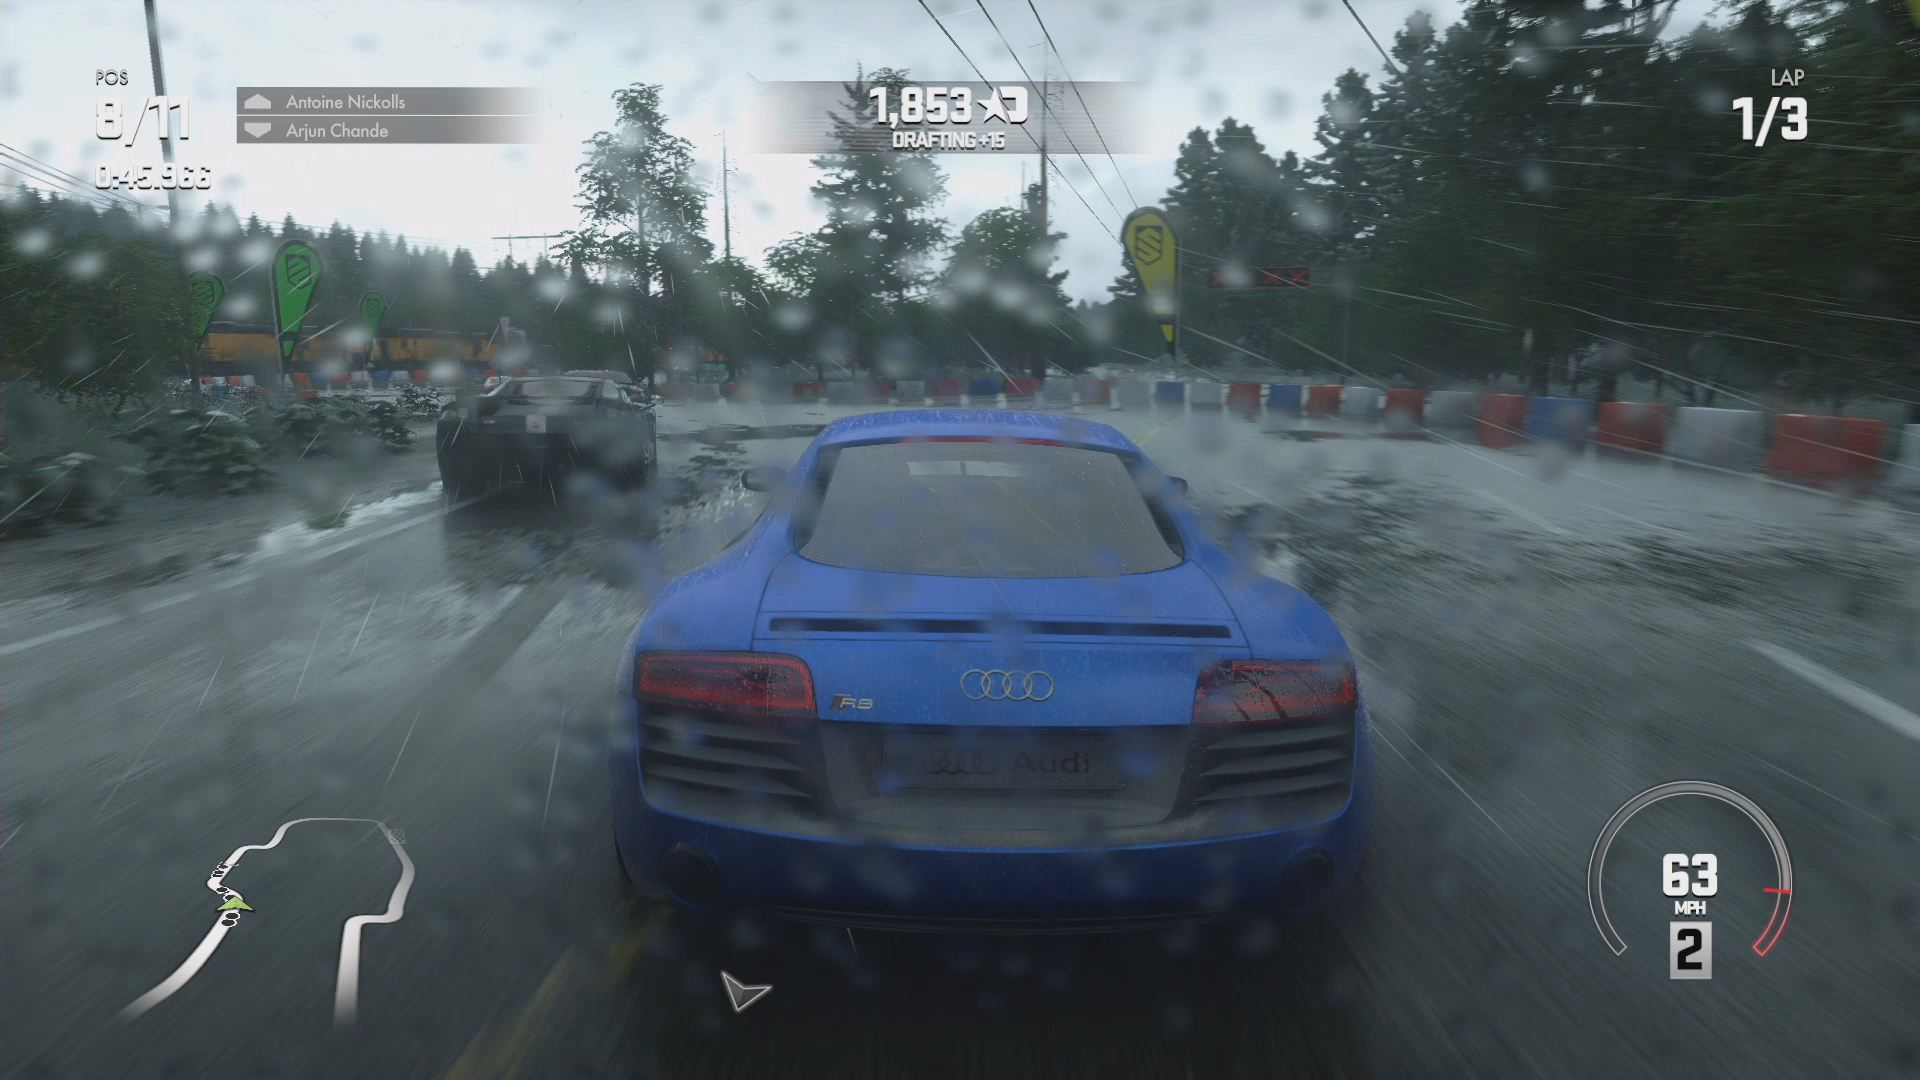 PROJECT CARS Note PS4 Footage Contributed By Alan Lee